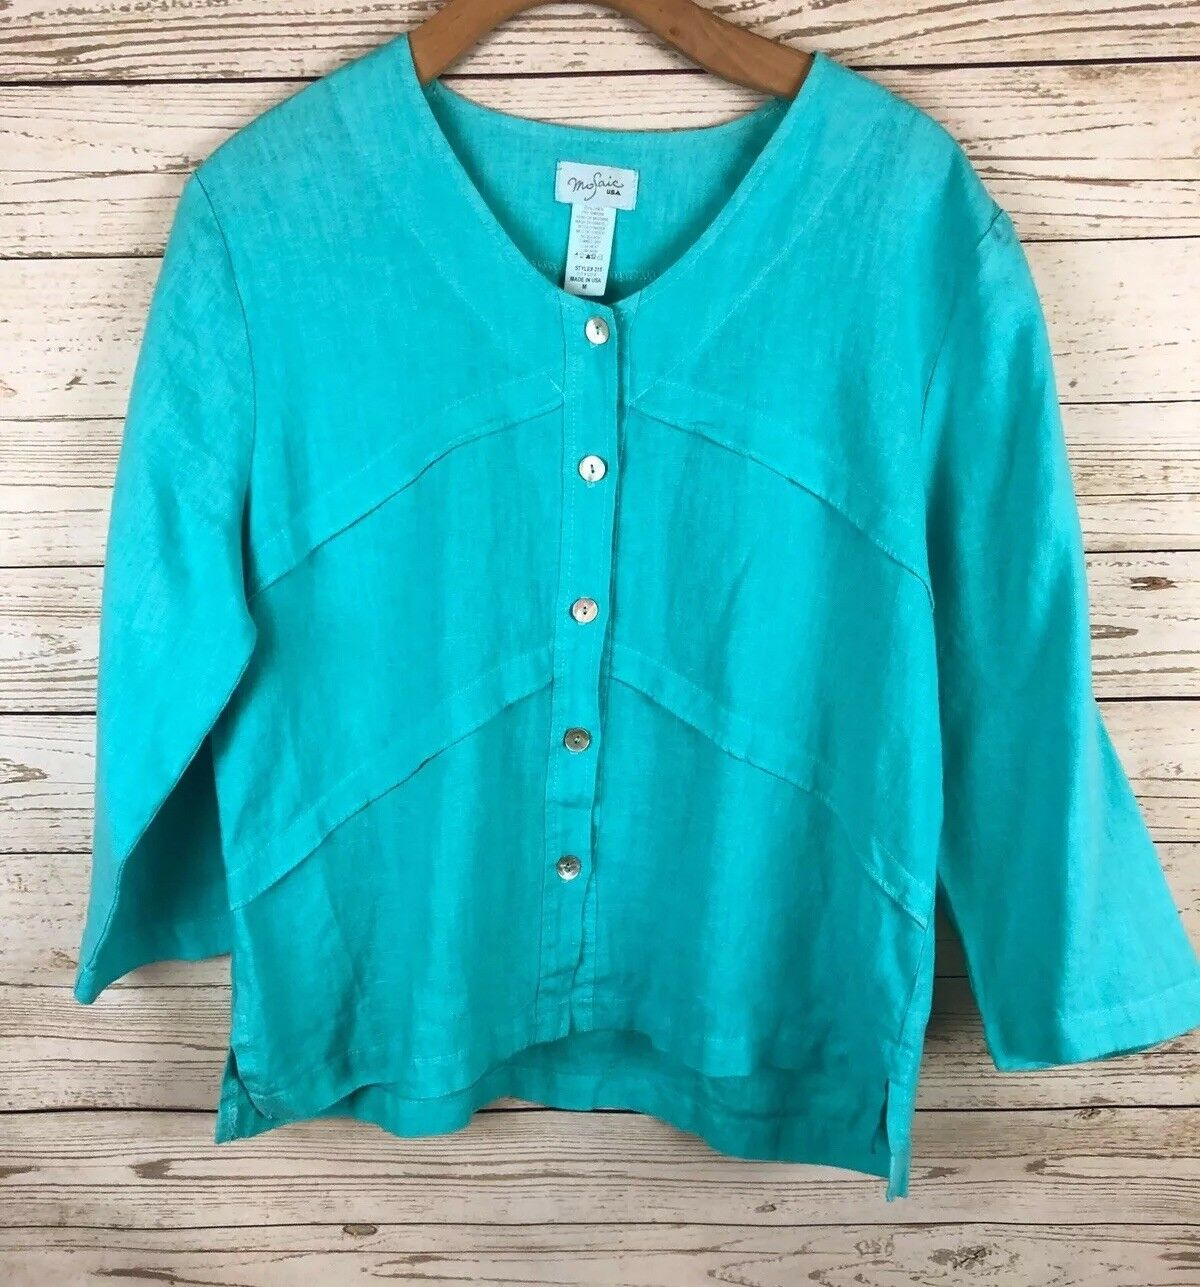 Mosaic USA Medium 100% Linen Turquoise Lagenlook Button Down Blouse j5